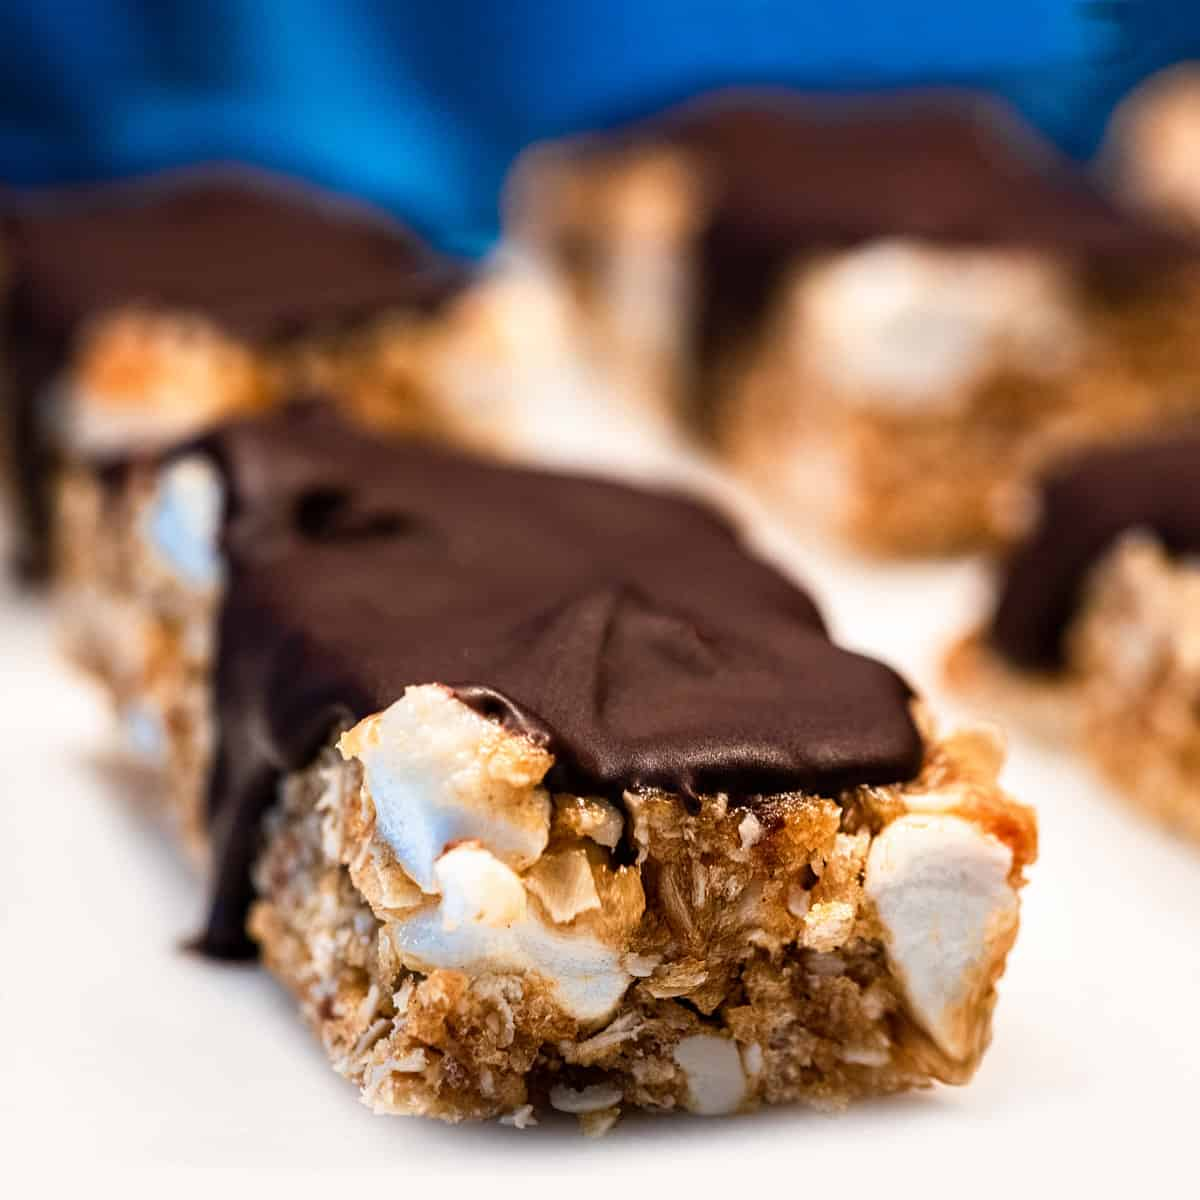 Up close view of a peanut butter s'mores bar.